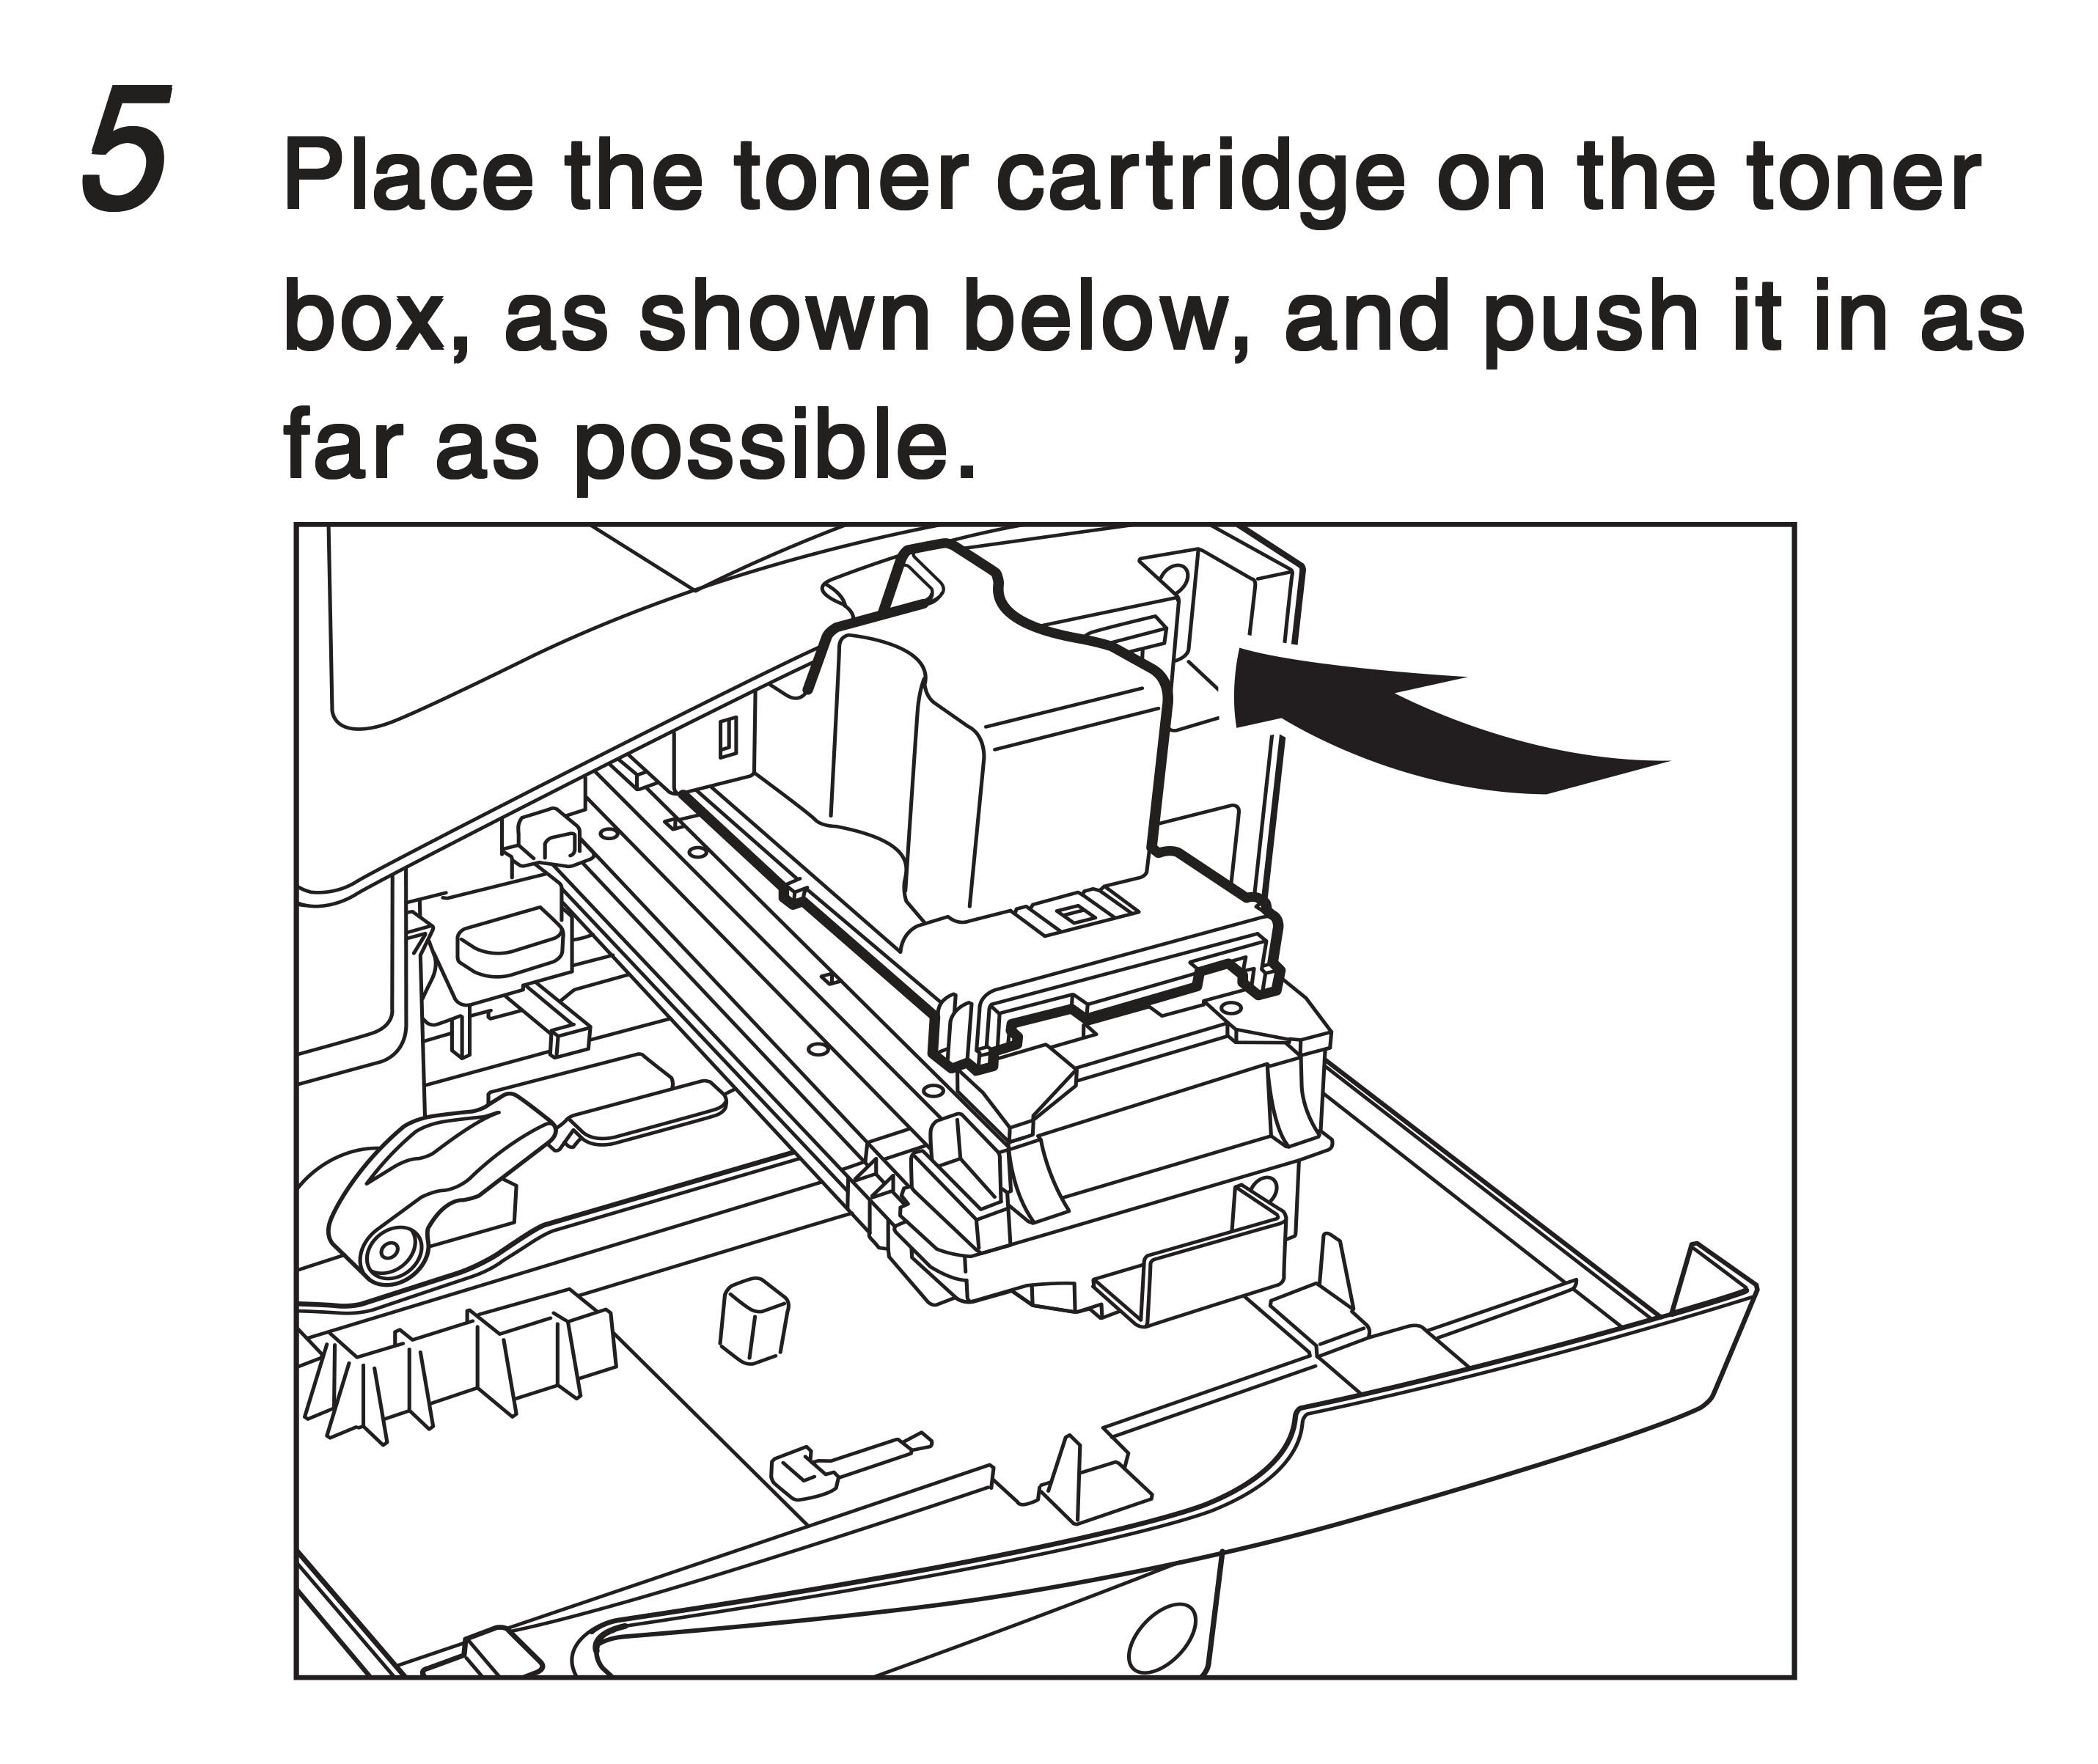 5. Place the toner cartridge on the toner box, as shown below, and push it in as far as possible.